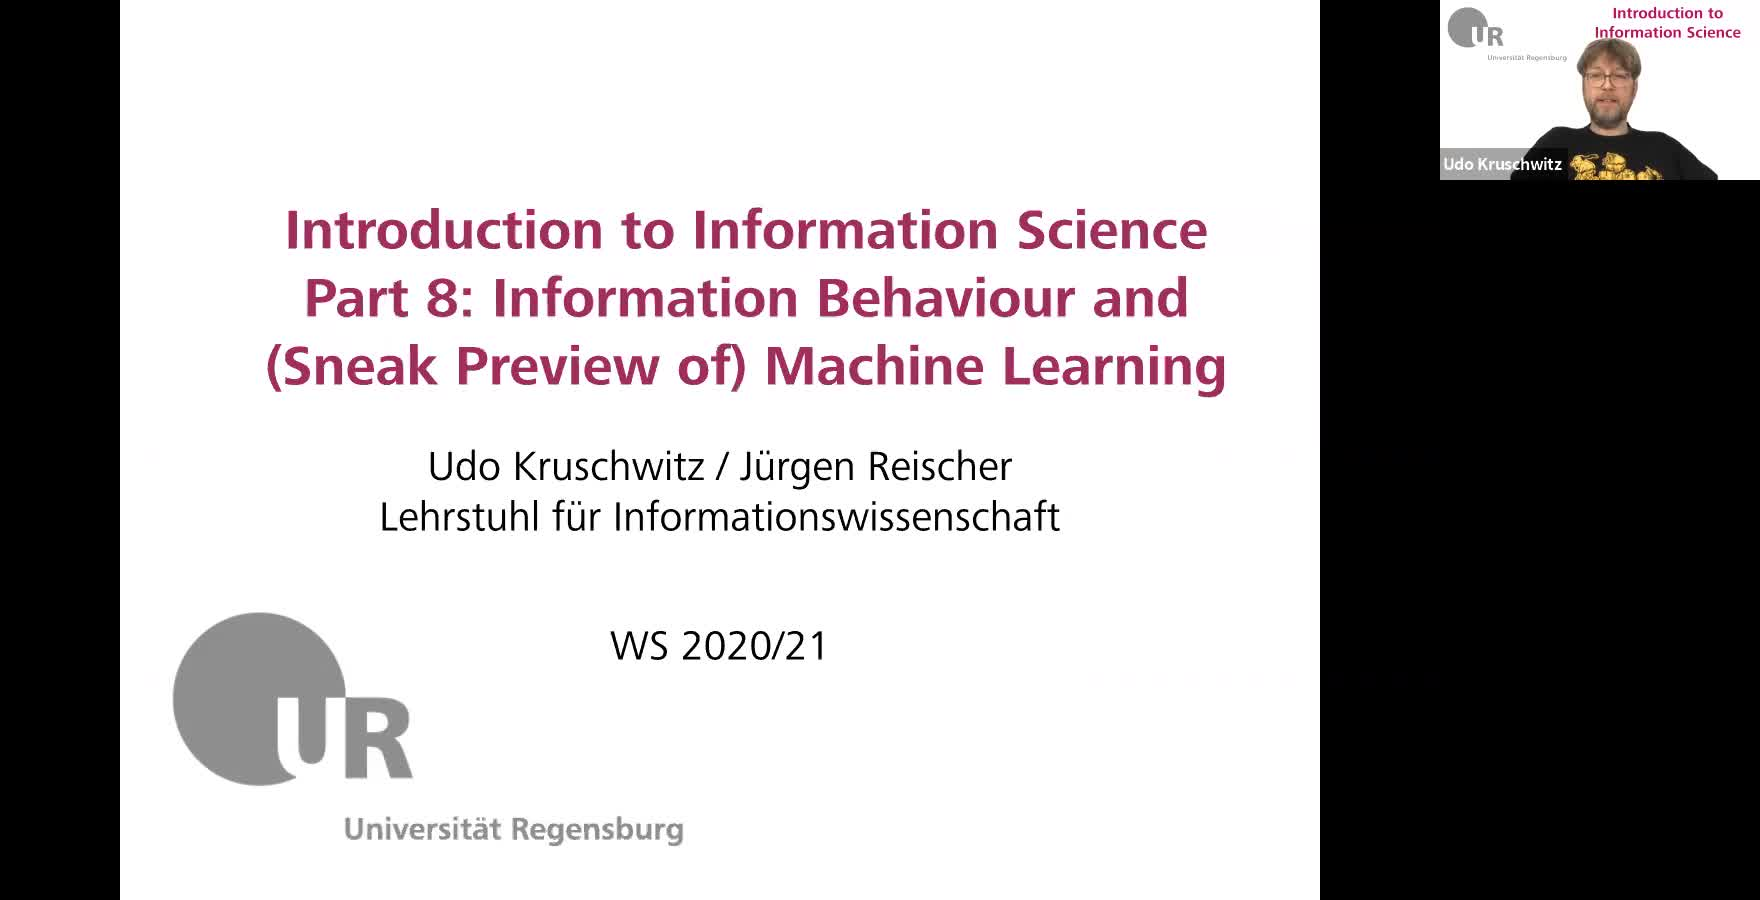 Introduction to Information Science - Lecture 12 (Information Behaviour and a glimpse into Machine Learning)